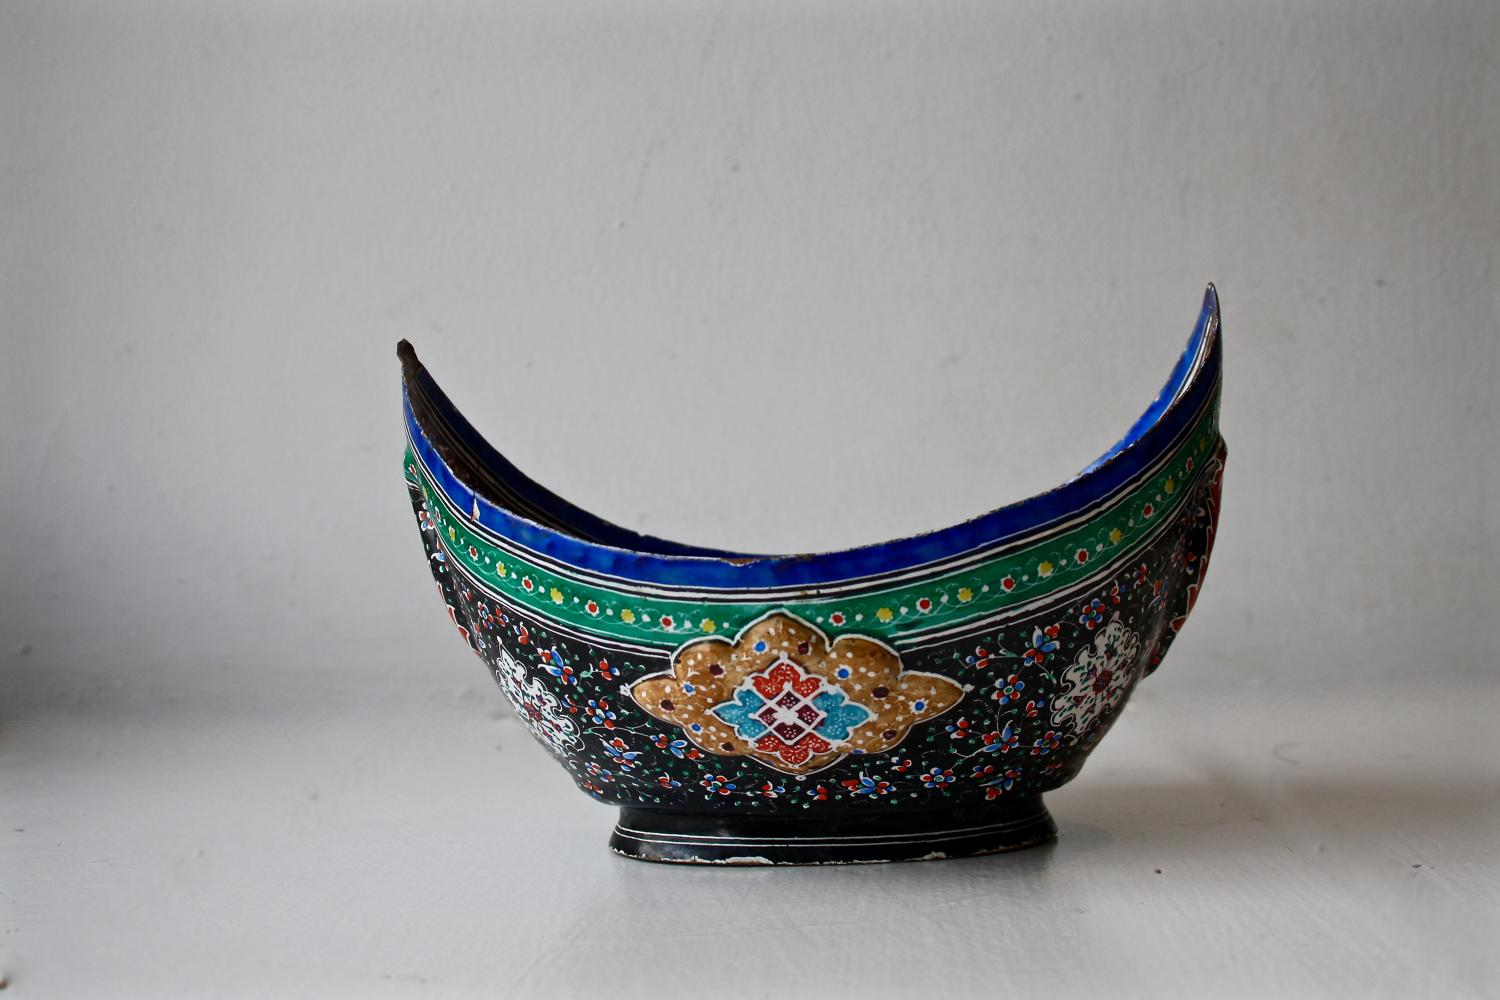 1950s enamelled begging bowl from Tehran